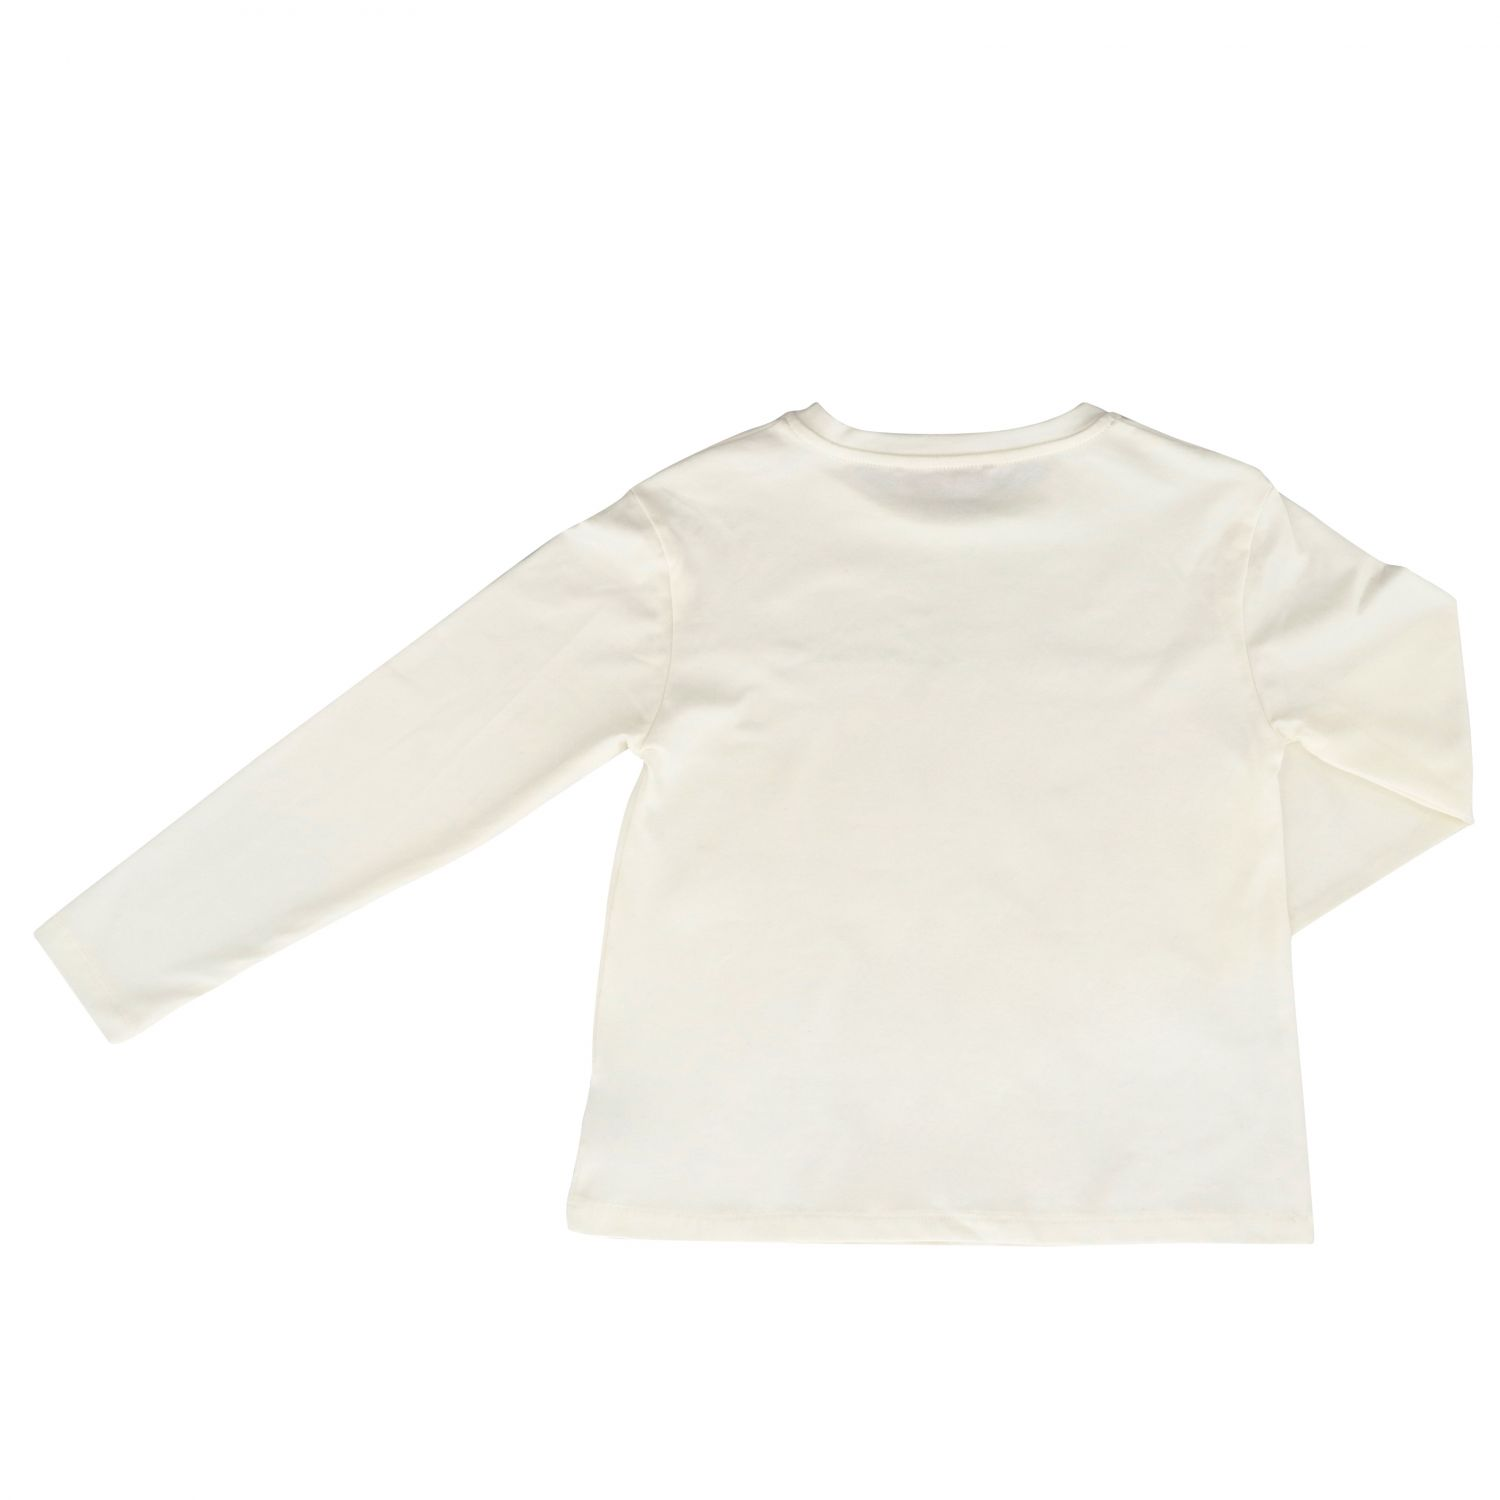 T-shirt kids Miss Blumarine yellow cream 2